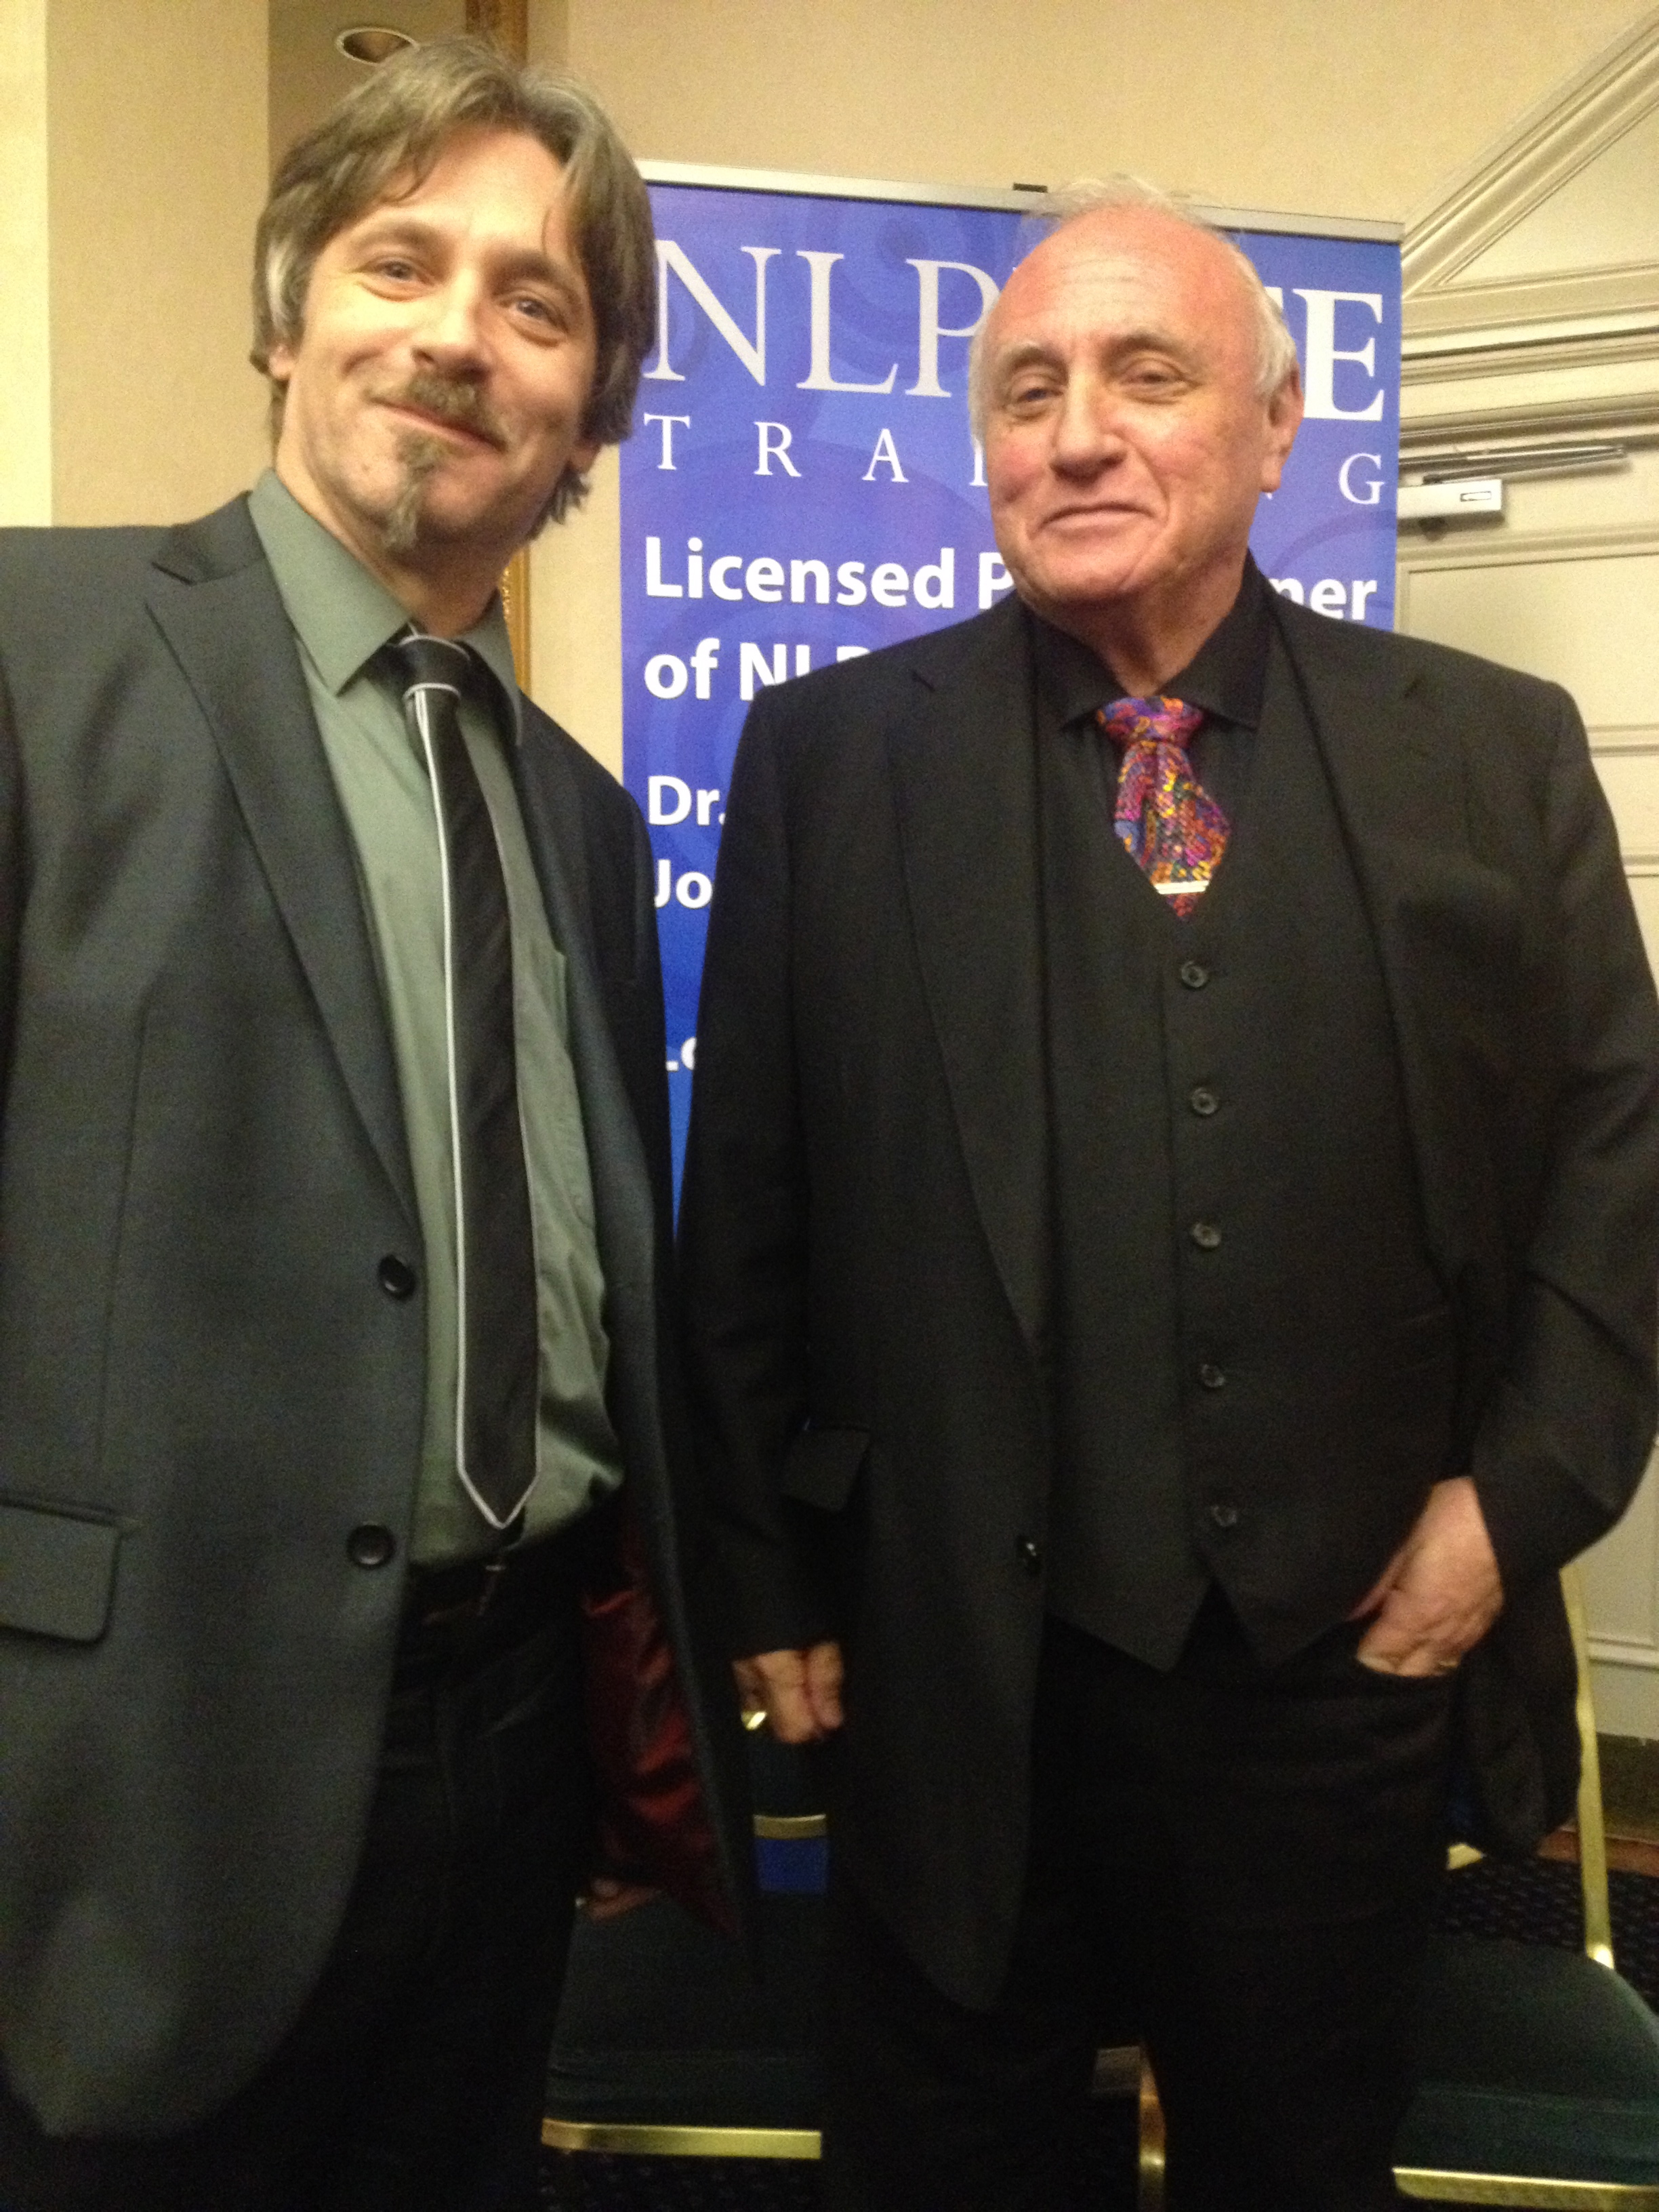 Tom Jagiello with Richard Bandler